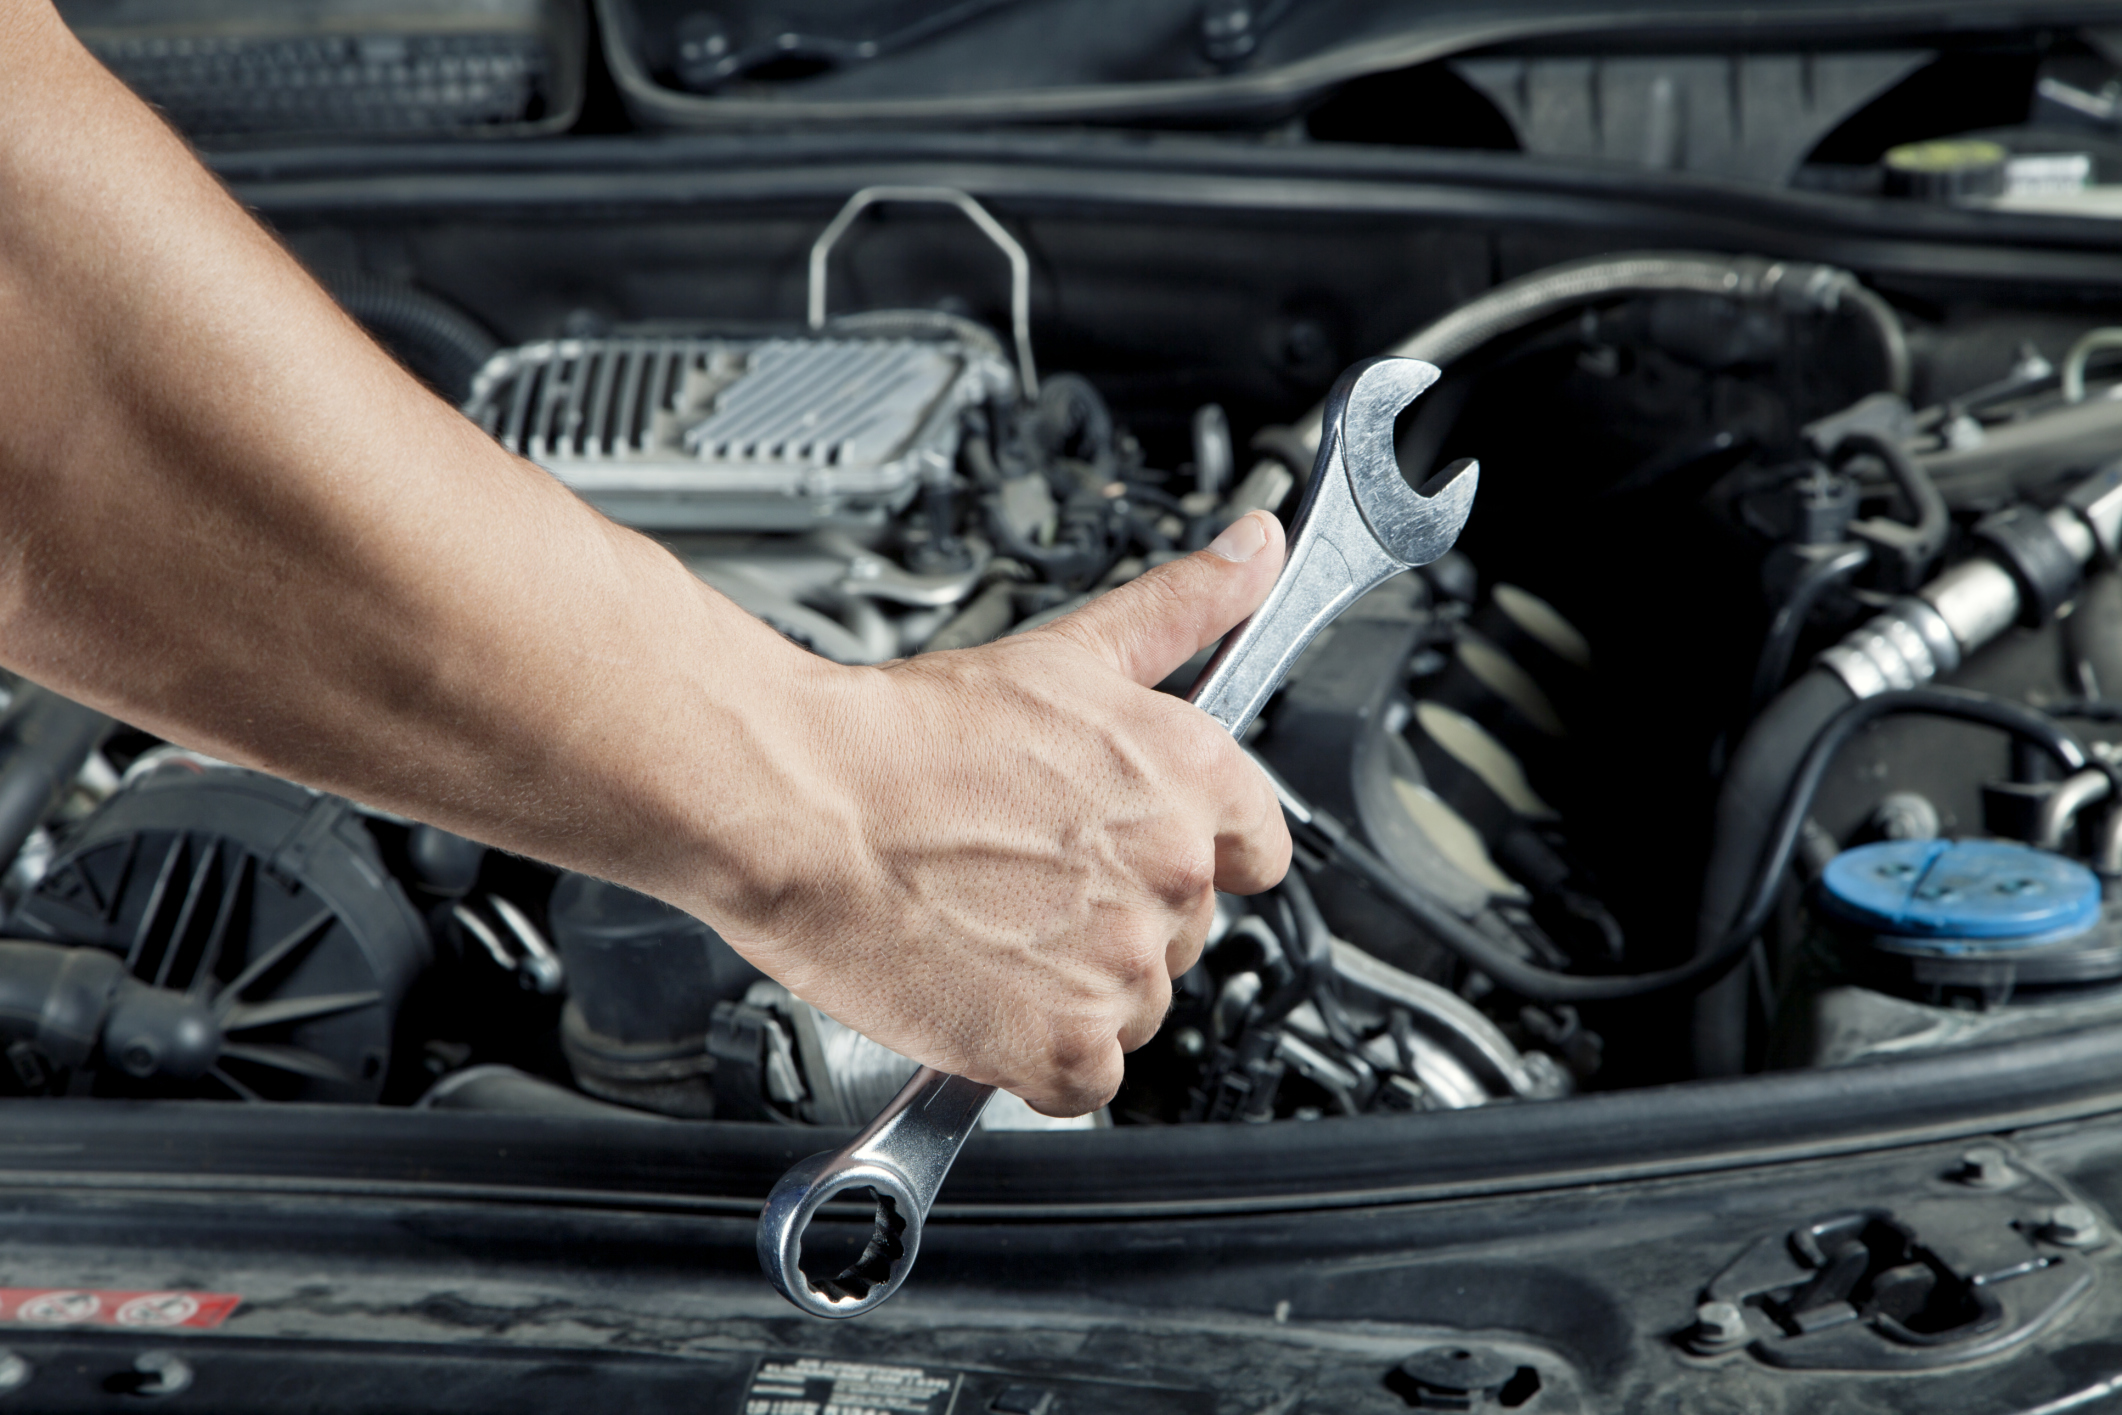 A closeup is shown of a hand holding a wrench in front of a car's engine bay.